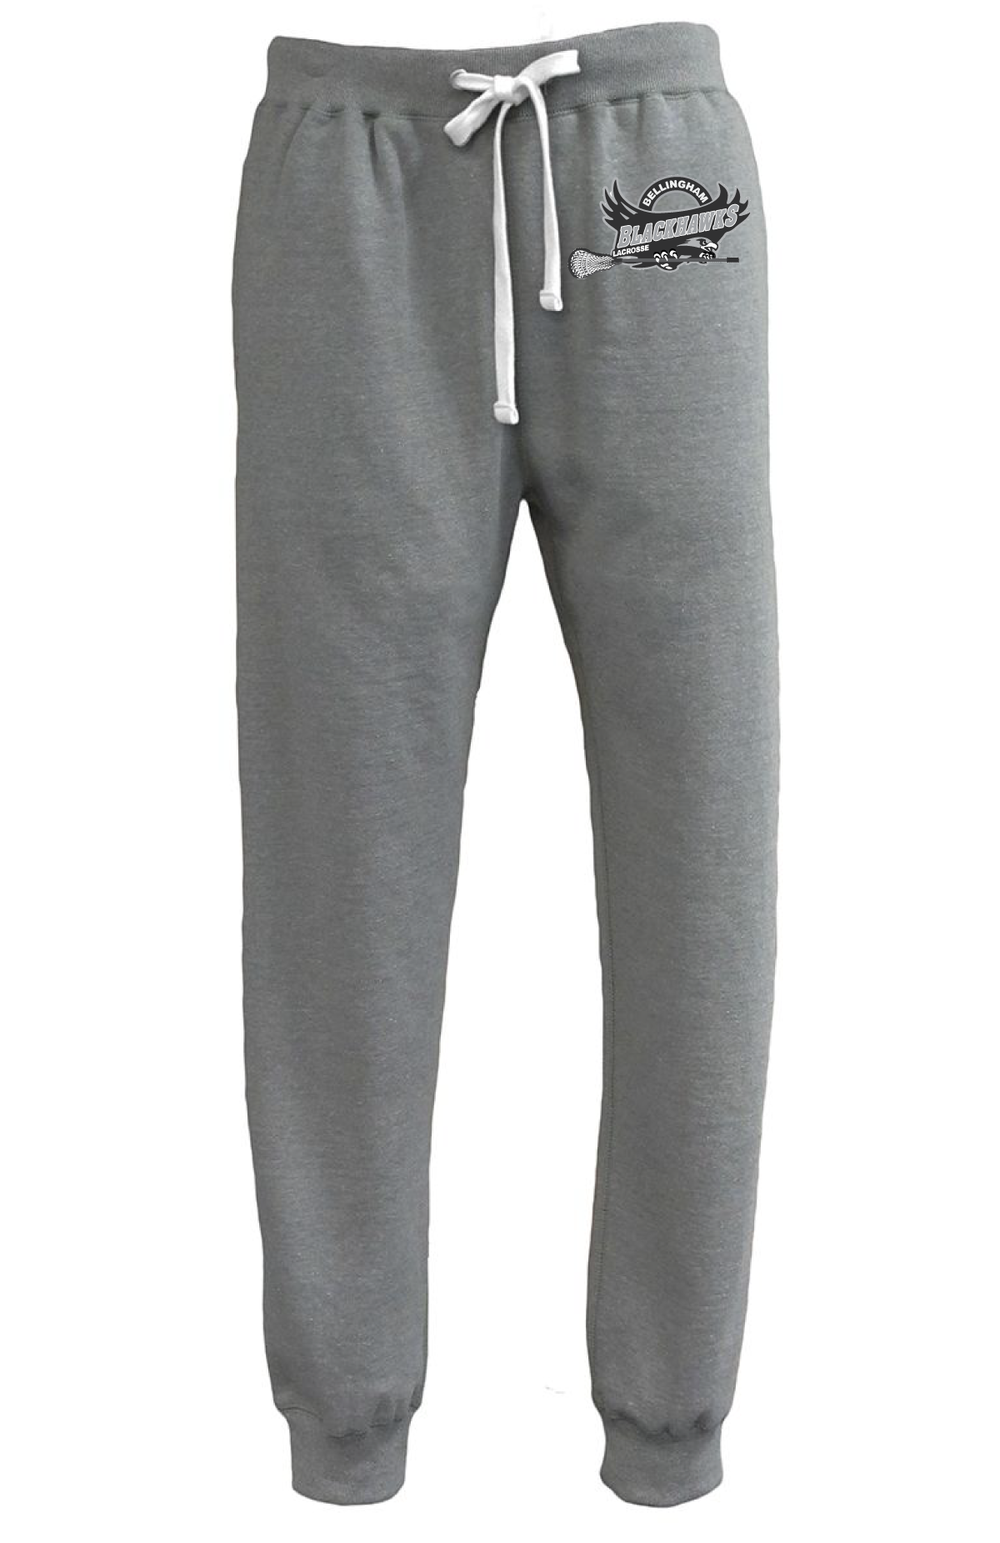 Bellingham Lacrosse Throwback Jogger Sweats - From $30